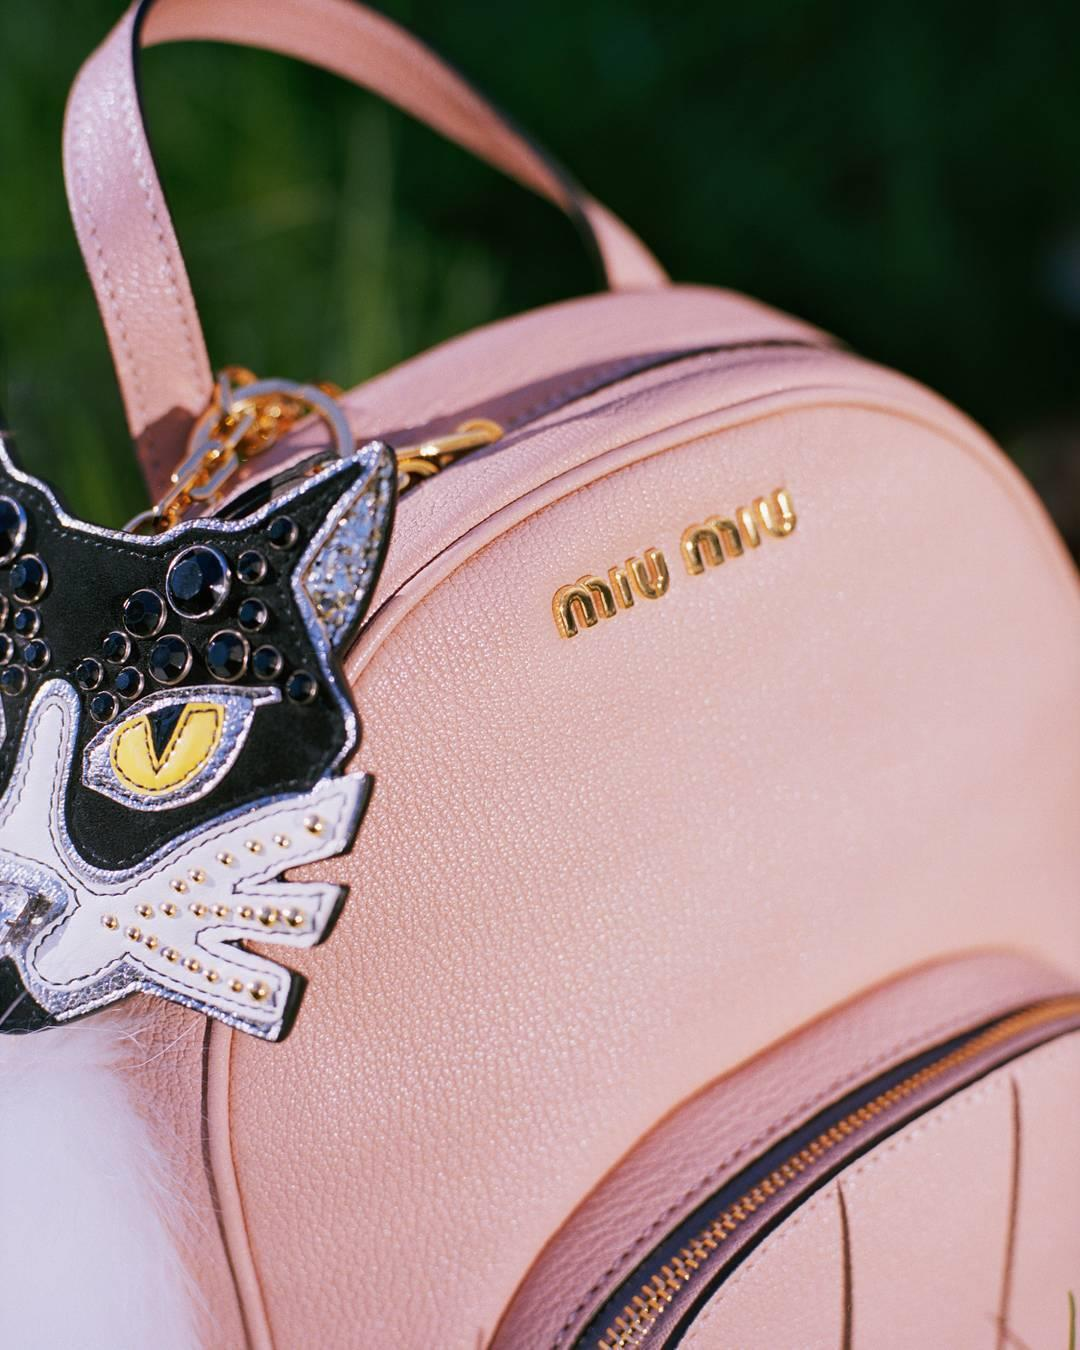 Miu Miu accessories, up close